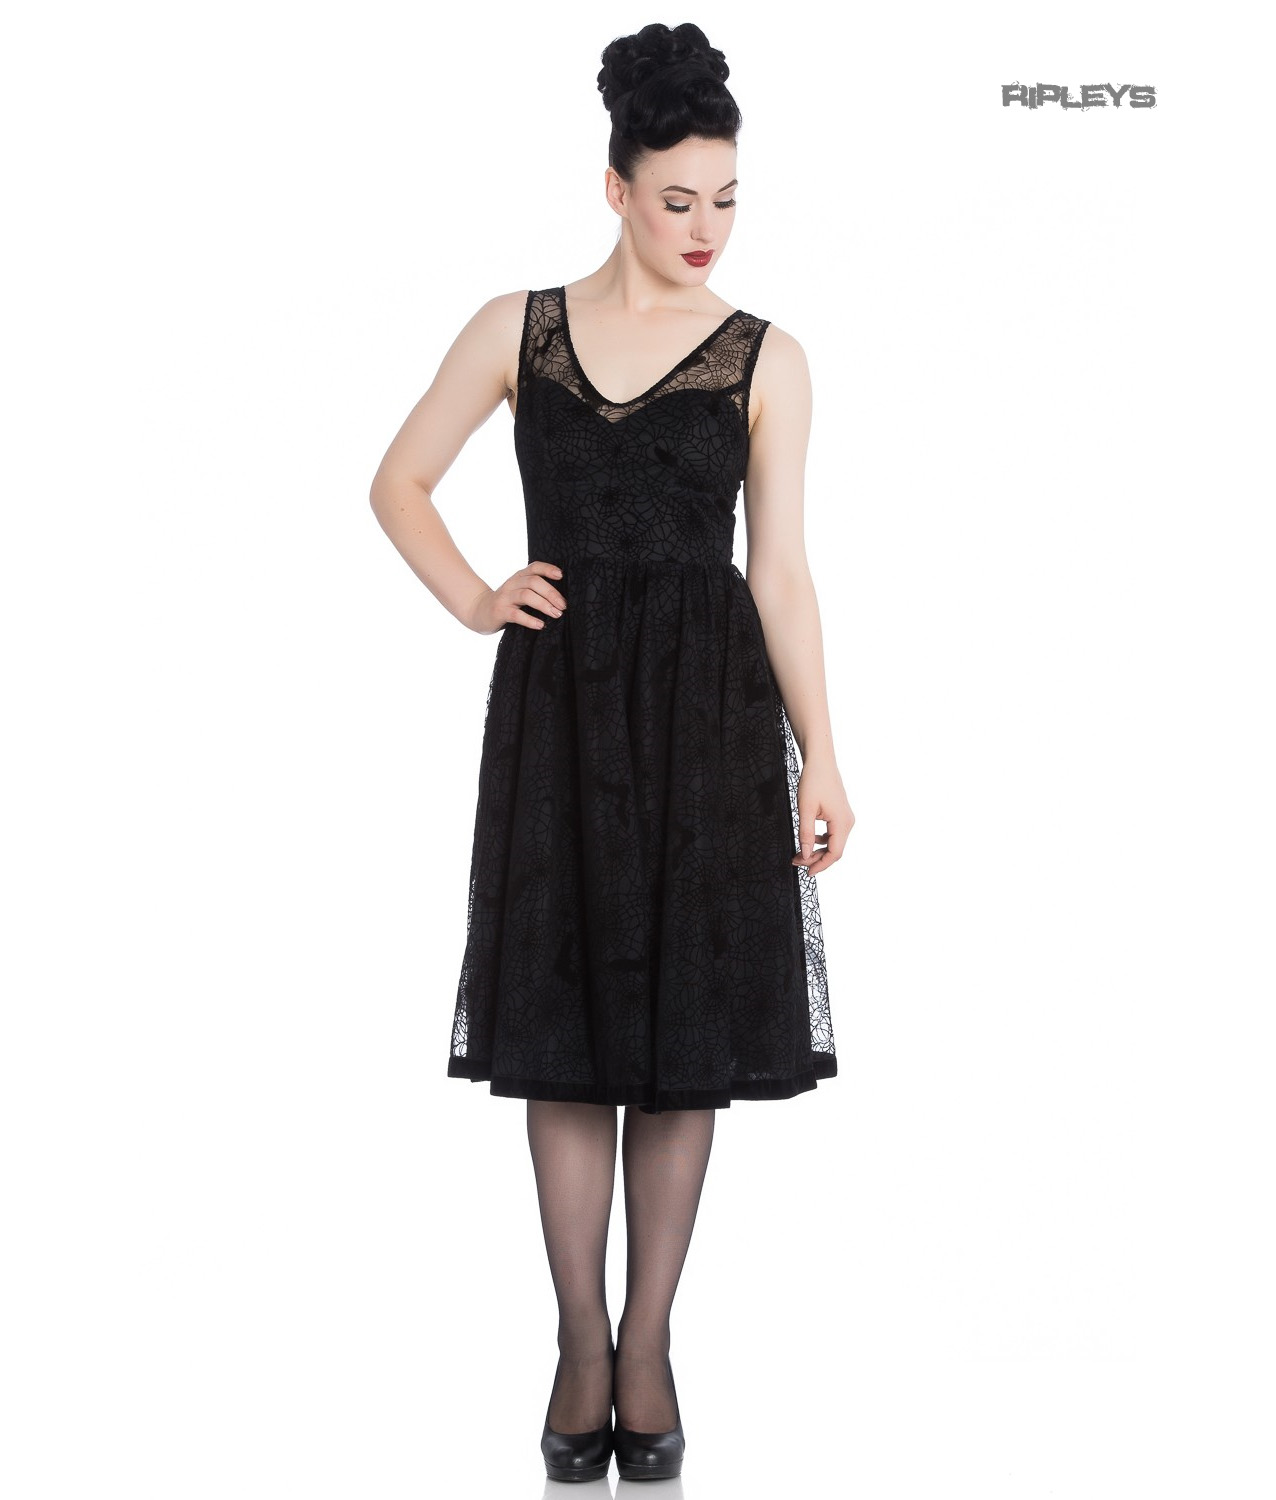 Hell-Bunny-50s-Black-Gothic-Net-Dress-Witchy-AMARANDE-Spiders-Bats-All-Sizes thumbnail 6